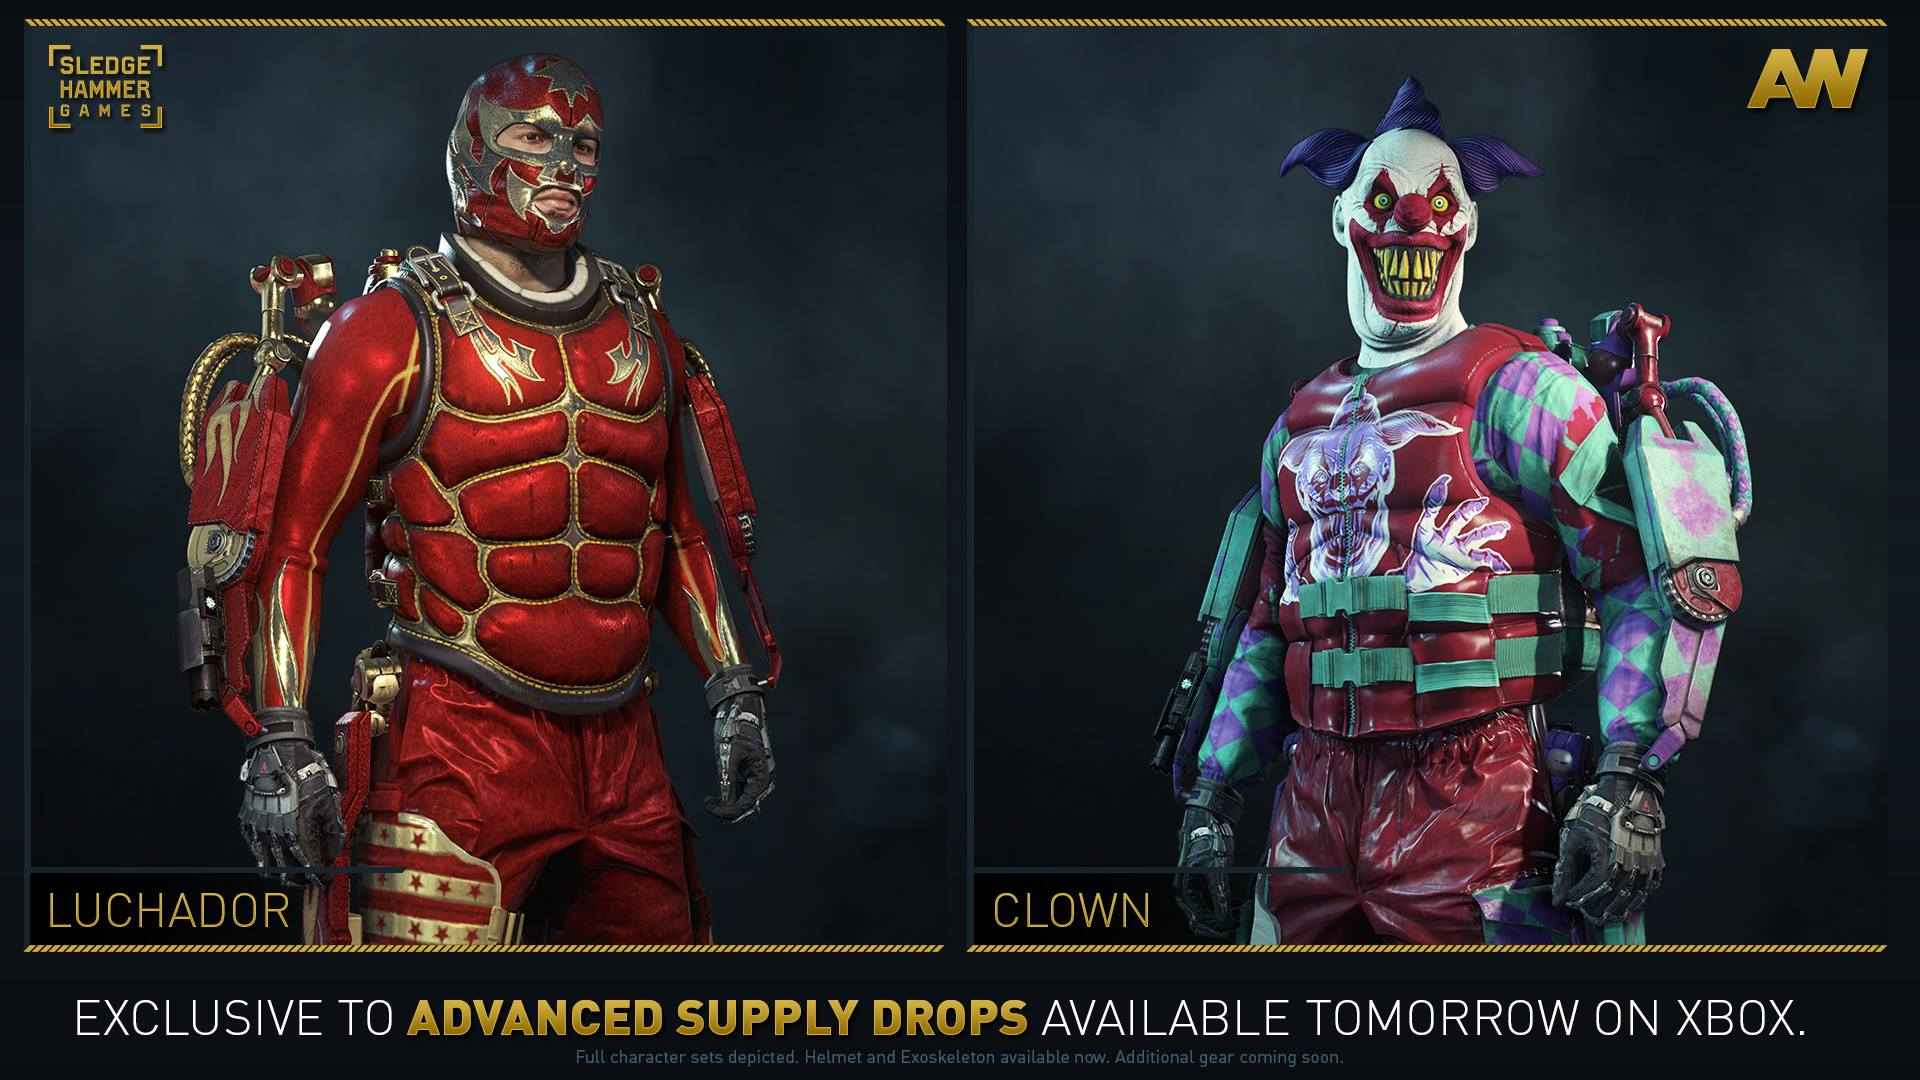 Five new gear sets now available in advanced supply drops on xbox